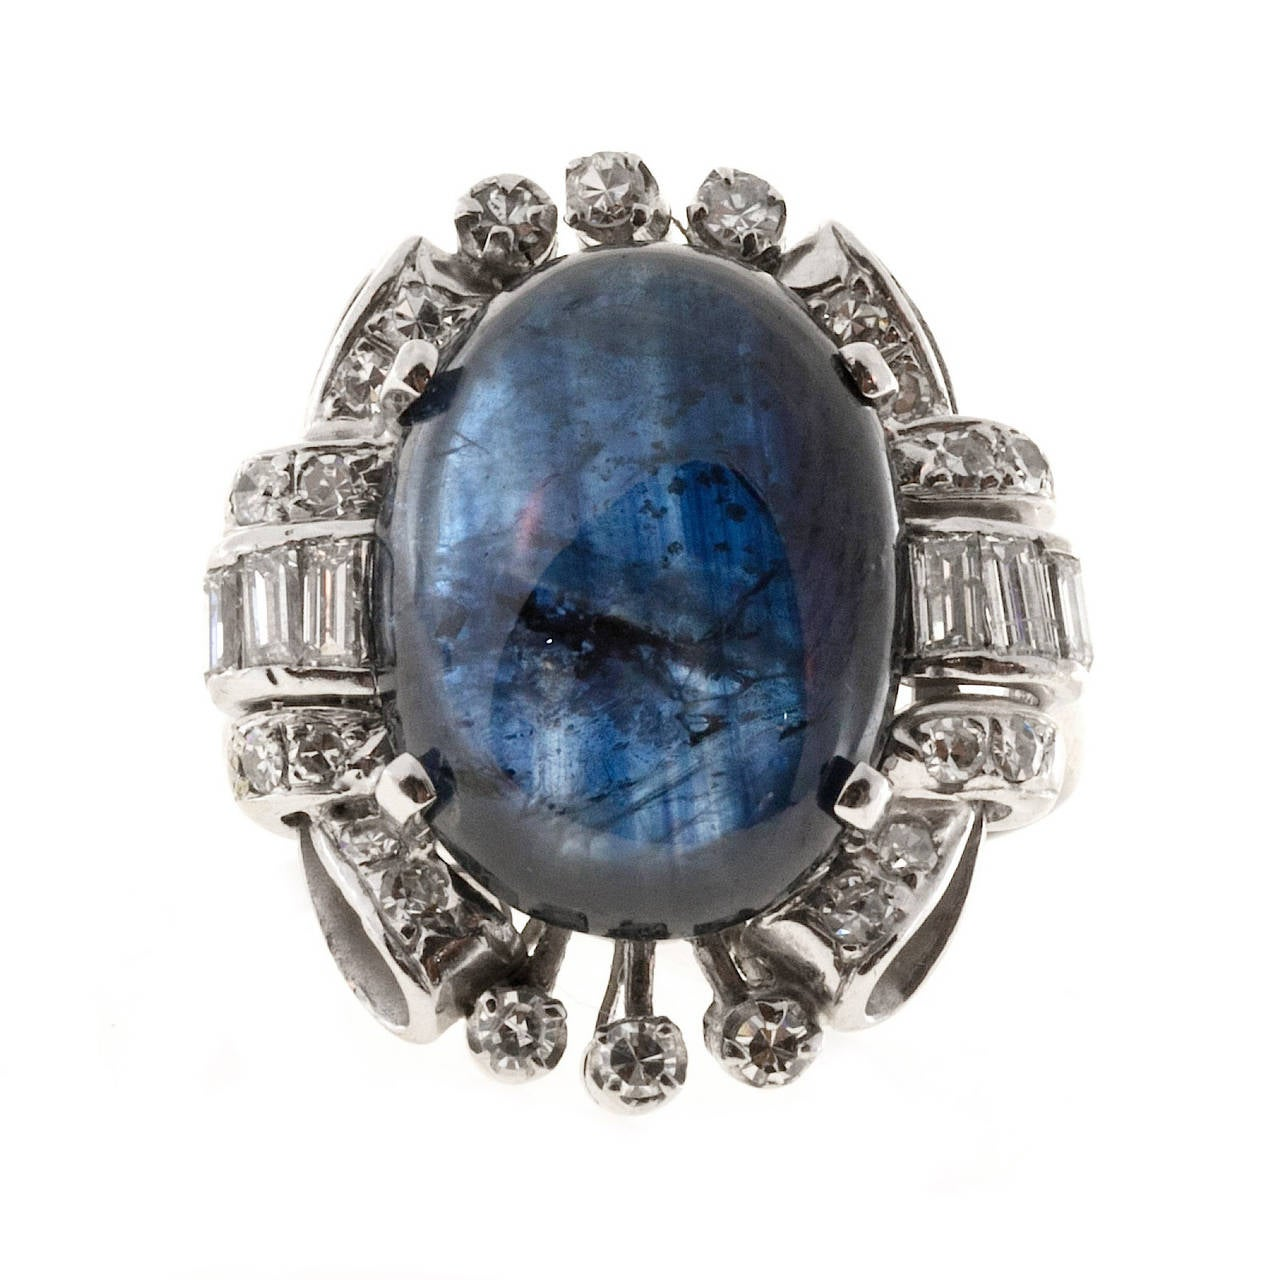 Oval Cabochon Sapphire Diamond Gold Cocktail Ring 7